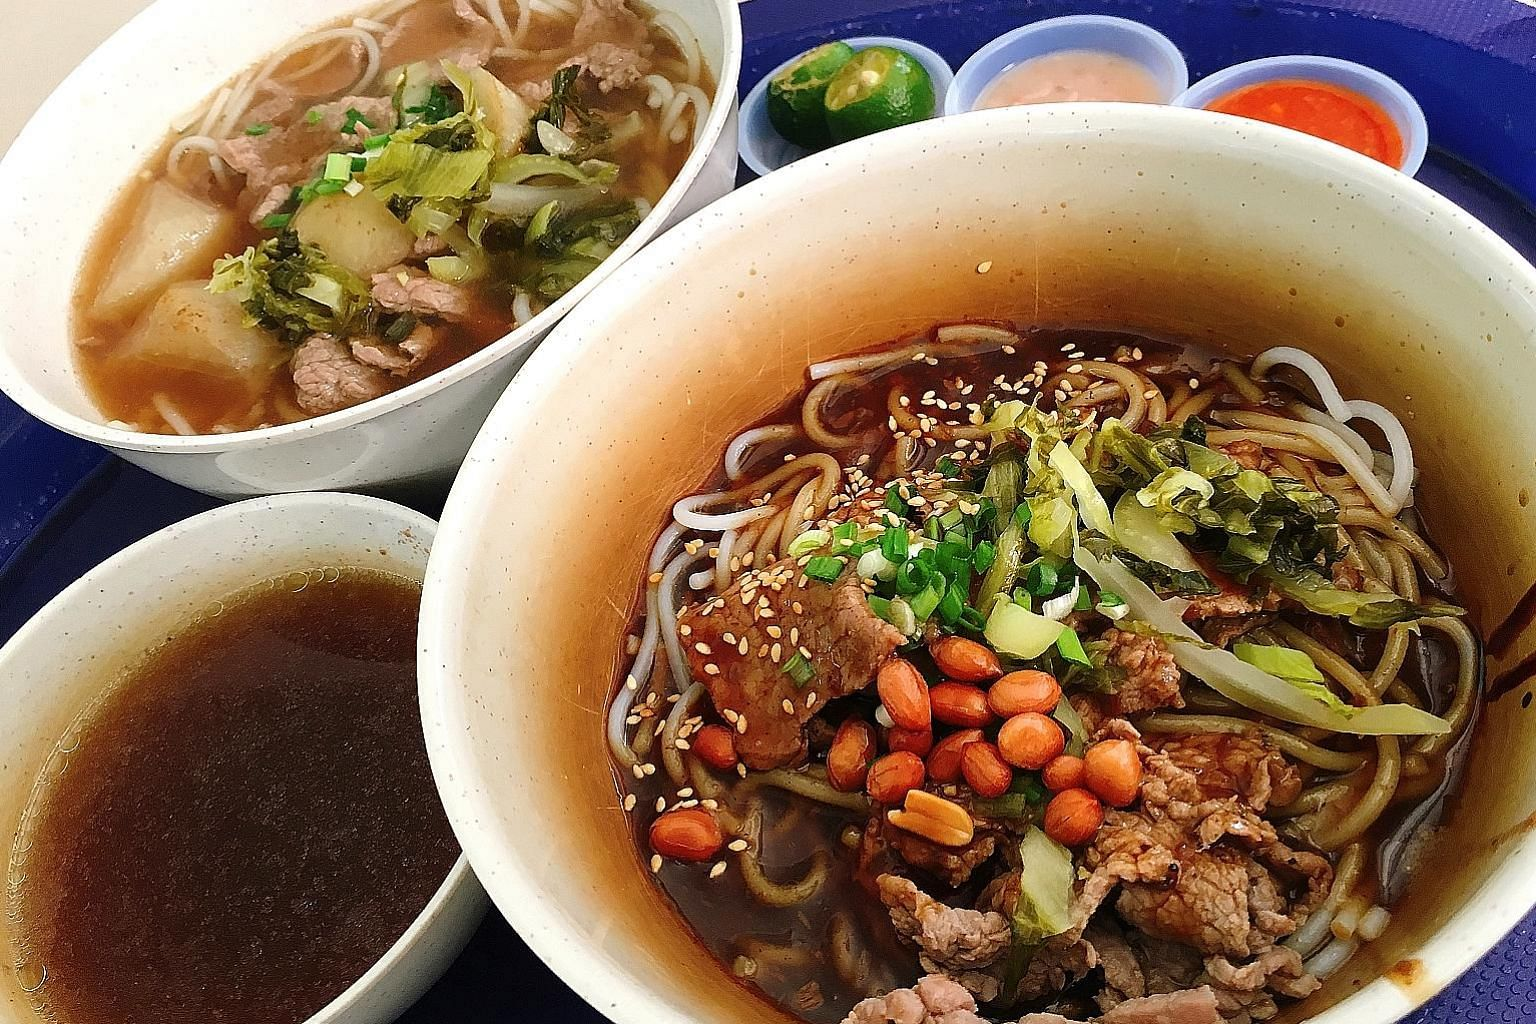 The Beef Noodle Soup and Beef Noodle Dry at Mr Wong Seremban Beef Noodles are no more than 500 calories each.